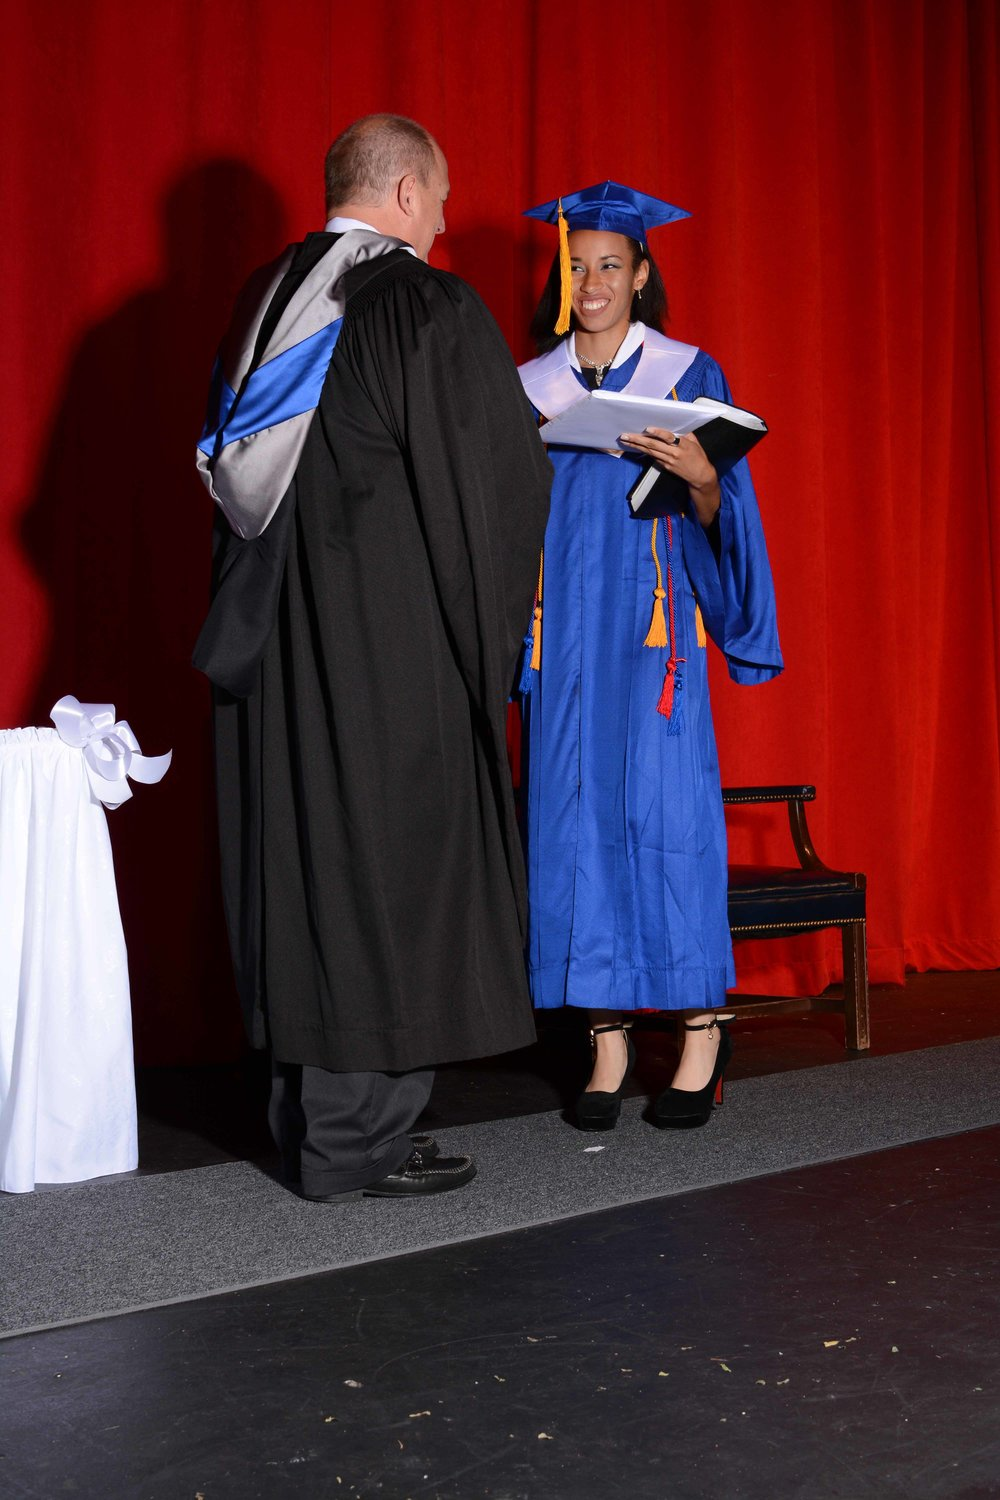 May15 HardingGraduation98.jpg